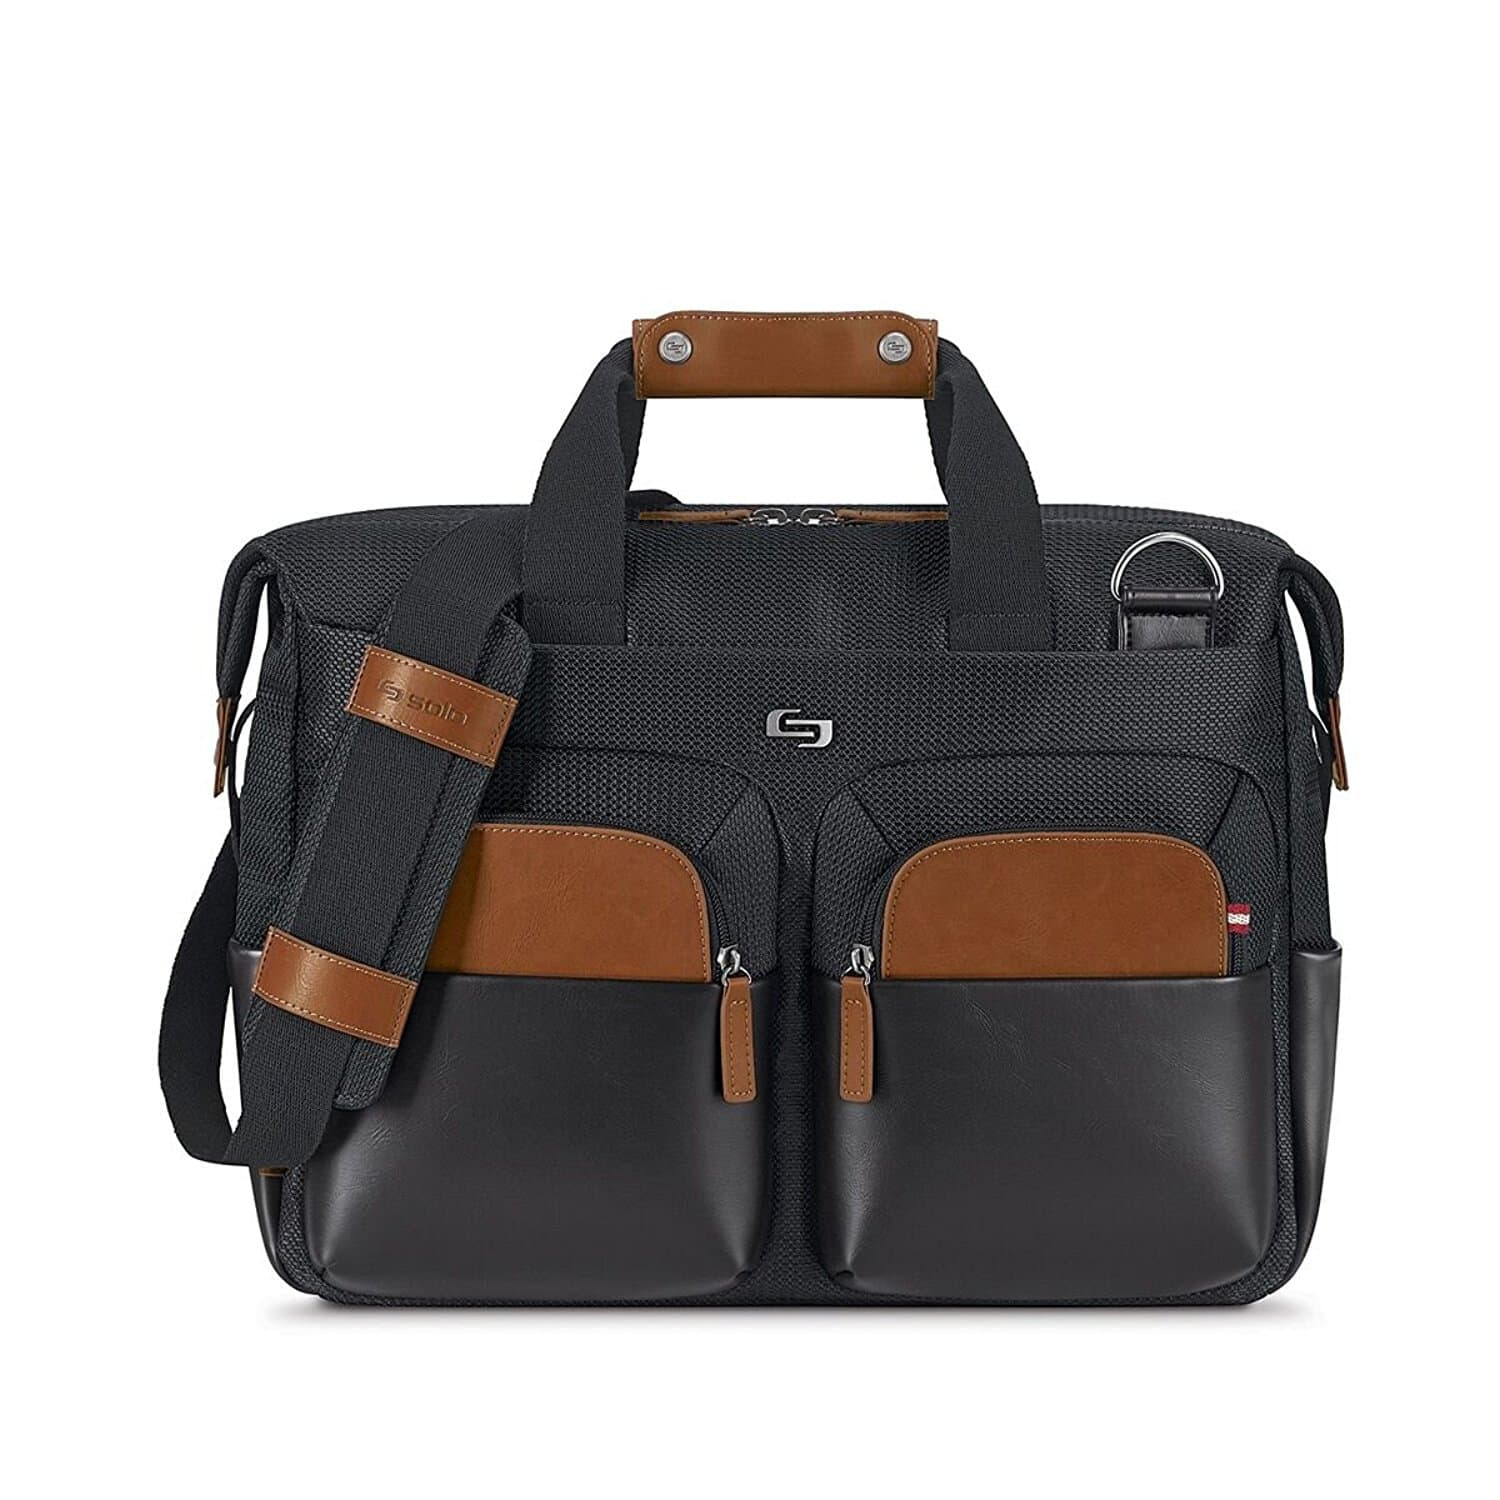 Solo Sag Harbor 15.6 Laptop Briefcase, Black [Black] for $44.45